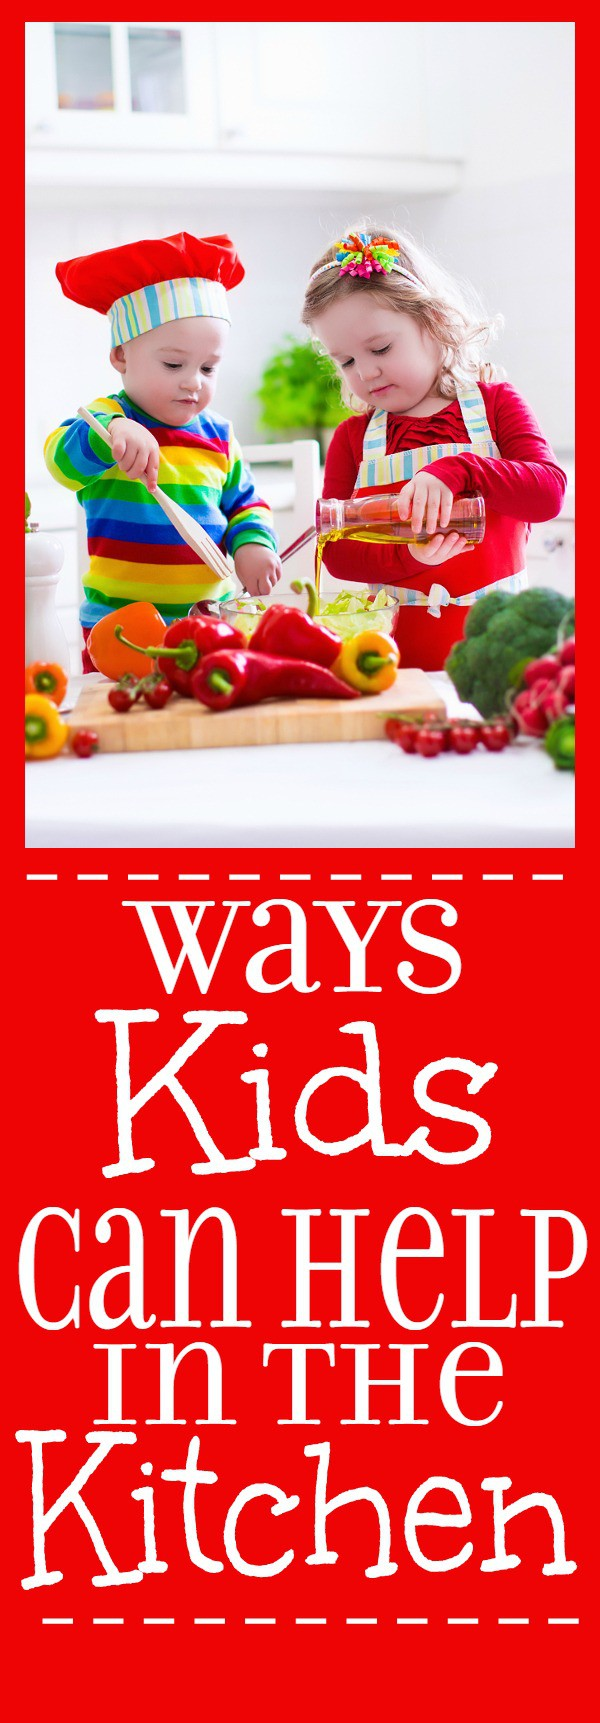 10 Tasks Kids can Help with in the Kitchen -Kids can help in the kitchen too! Get the kids involved, busy, and cooking with these 10 tasks kids can help with in the kitchen. | parenting